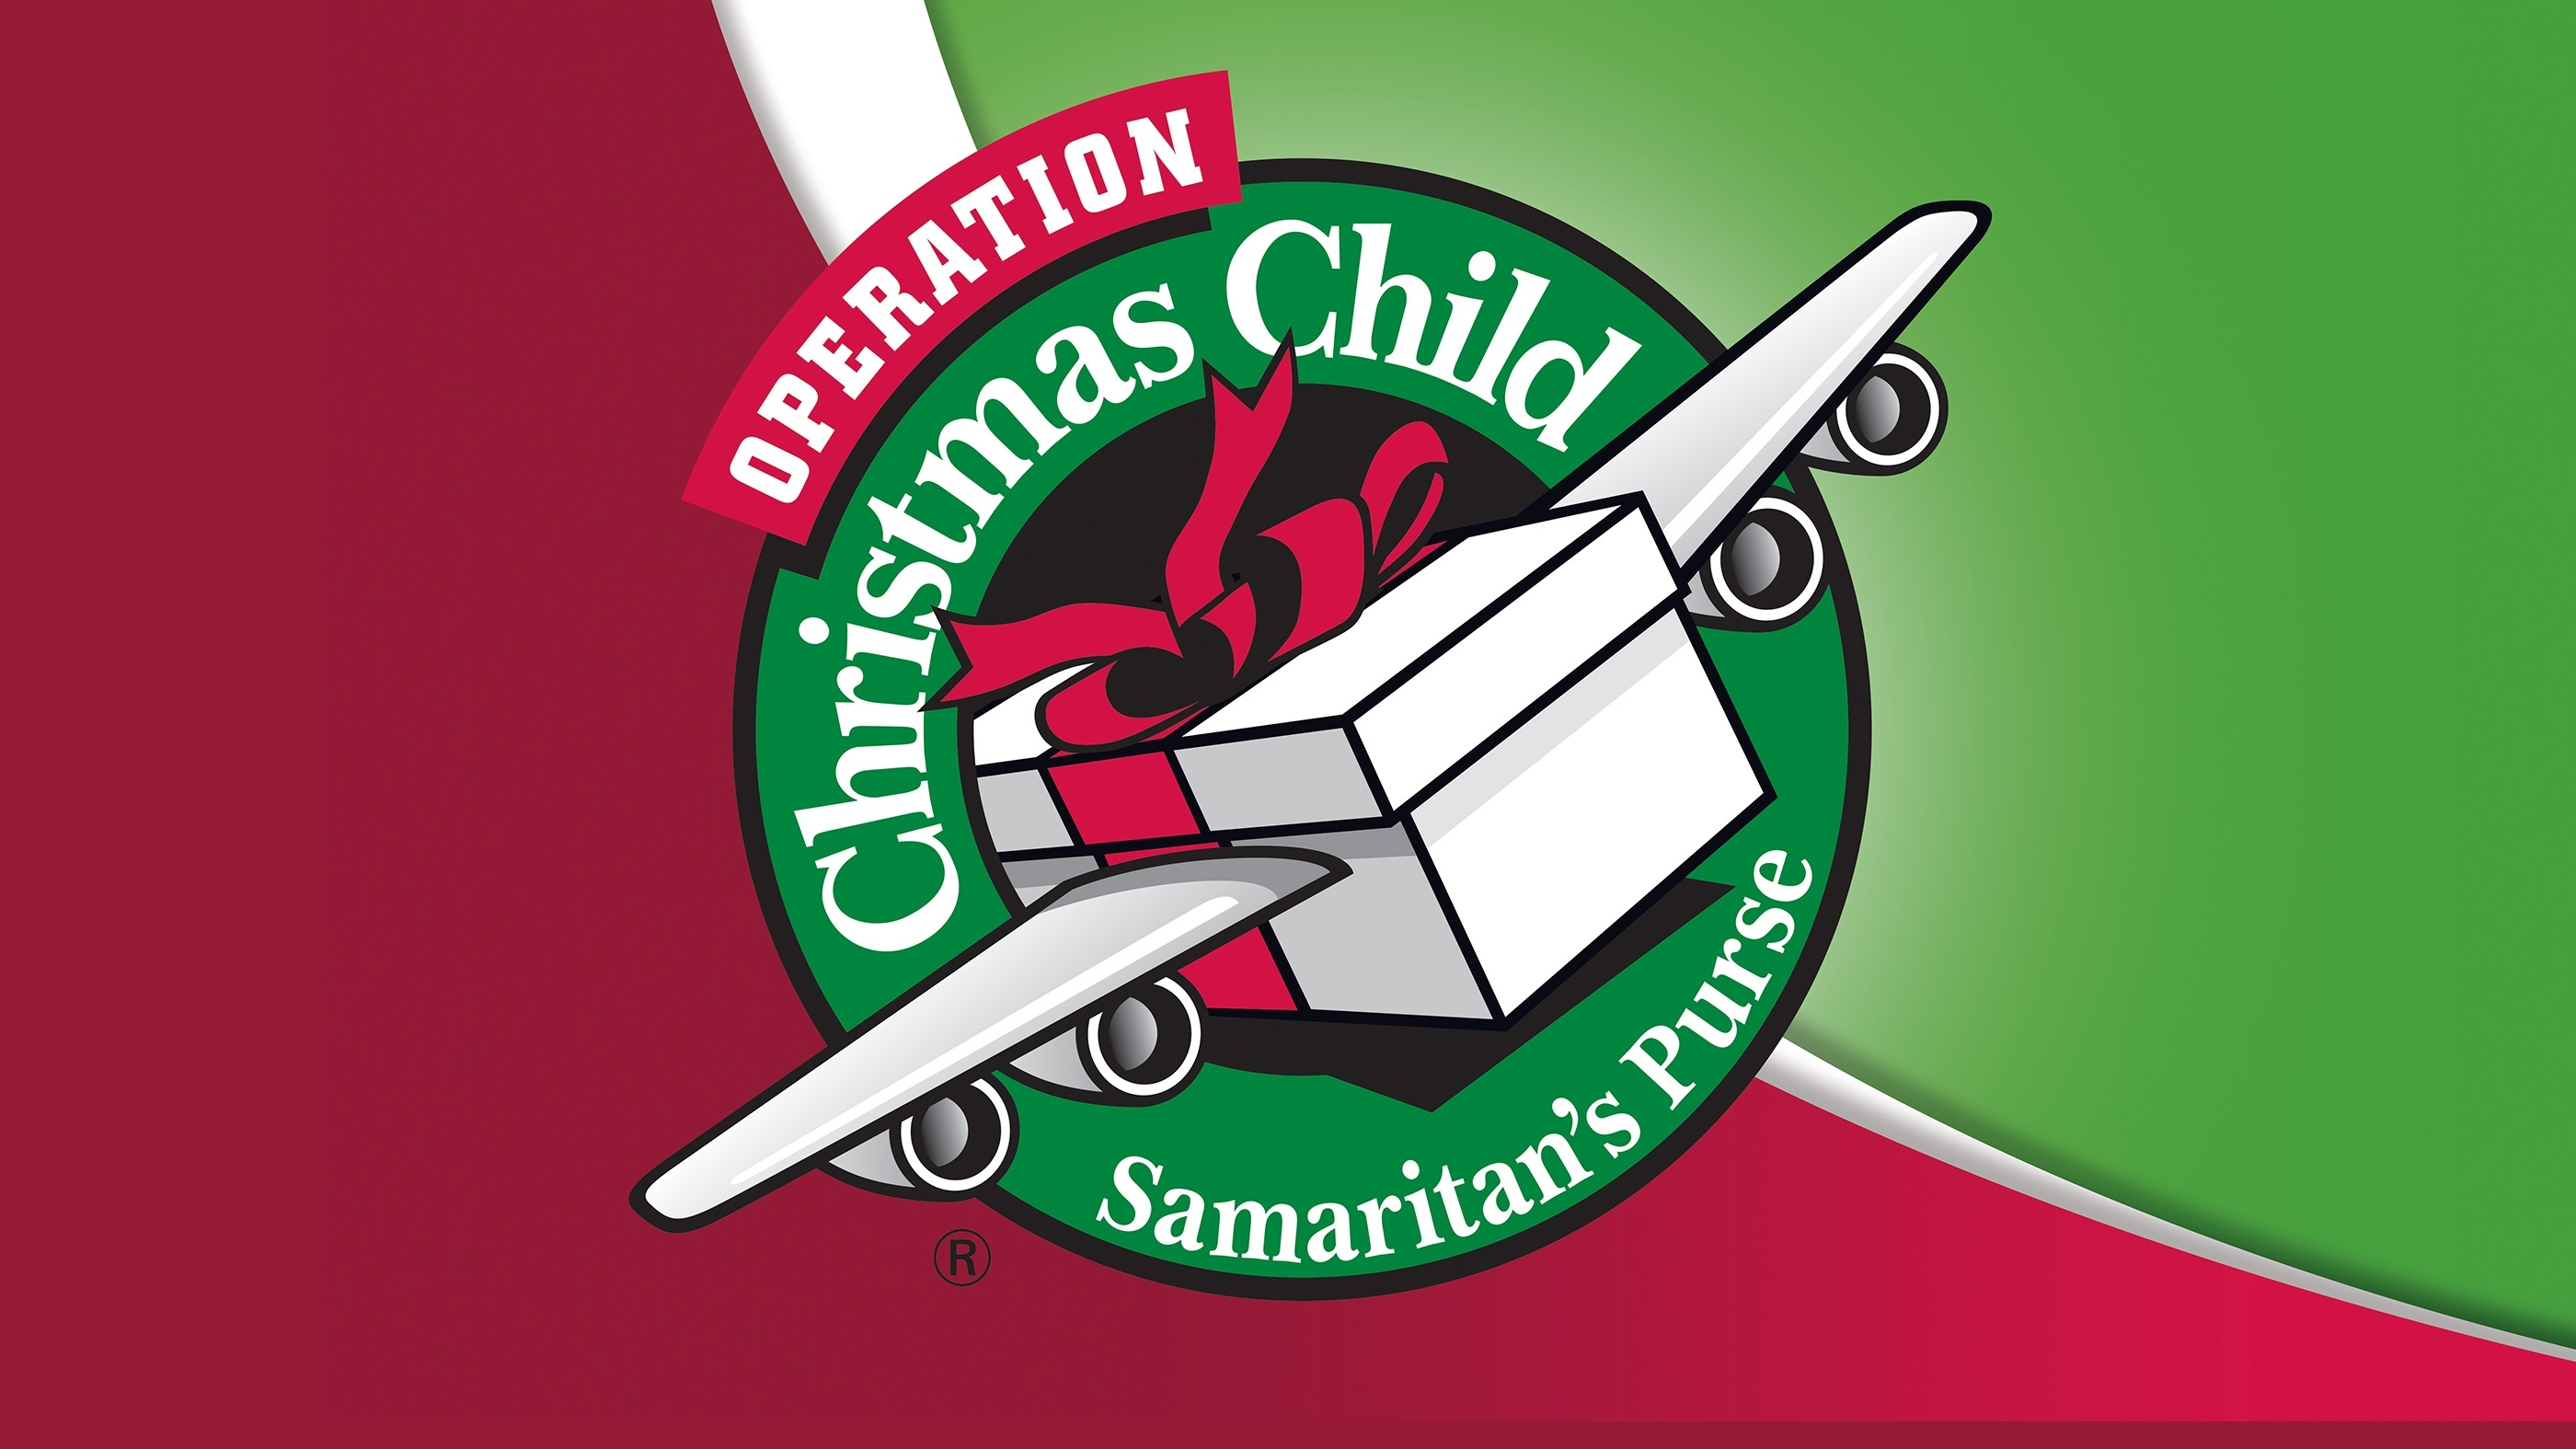 Operation Christmas Child Project.